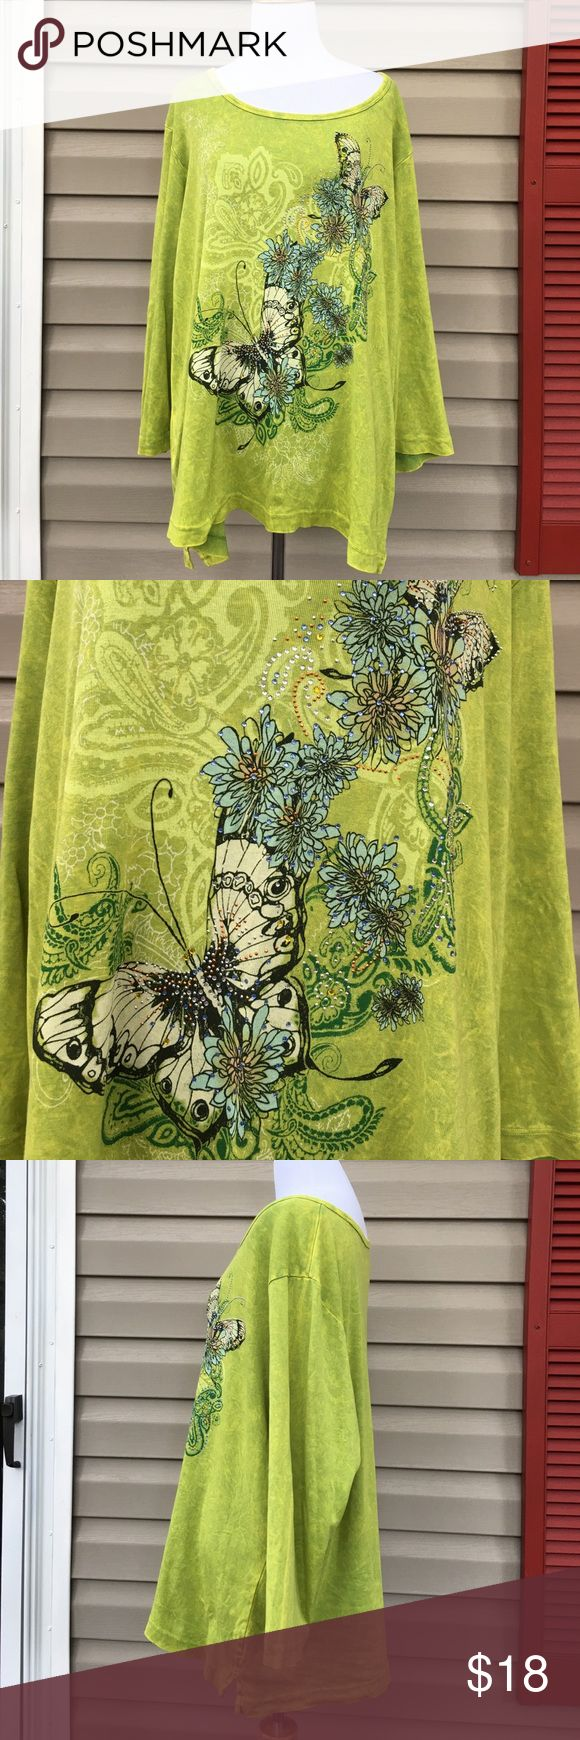 """Westbound woman 3/4 sleeve green shirt Nice women's 100% cotton shirt with flowers and butterflies on front. Green / yellow tye dyed looking fabric. No stains, snags or holes. Measures 25""""W x 28"""" L Westbound woman Tops"""